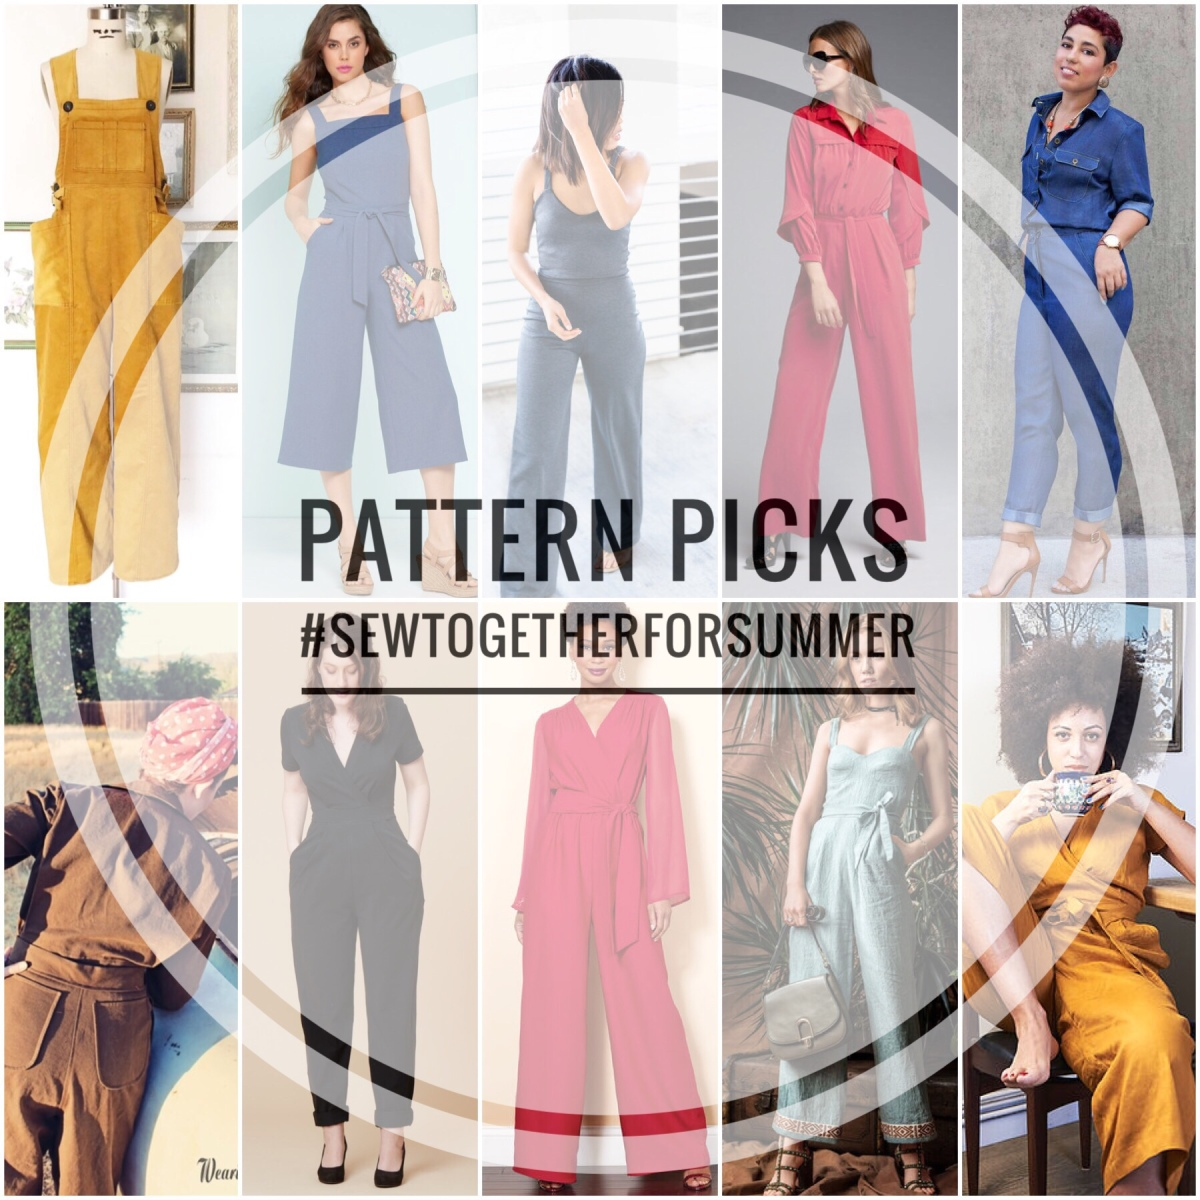 #sewtogetherforsummer 2019 - Sewing Pattern Picks! Burda, Big4, Indie (& A load of Freebies!)